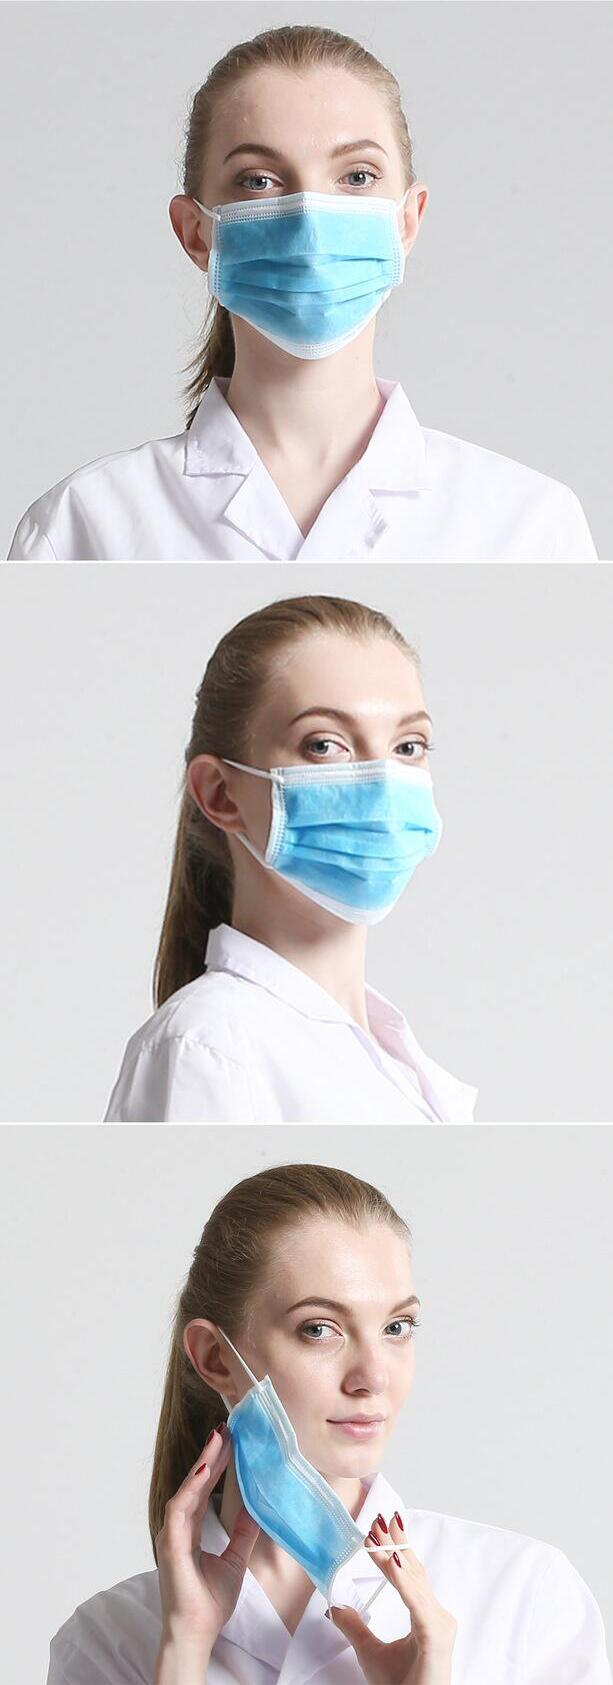 50Pcs POWECOM DM95 Disposable Face Masks 3-layer Non-woven Breathable Dust Masks Blue 2